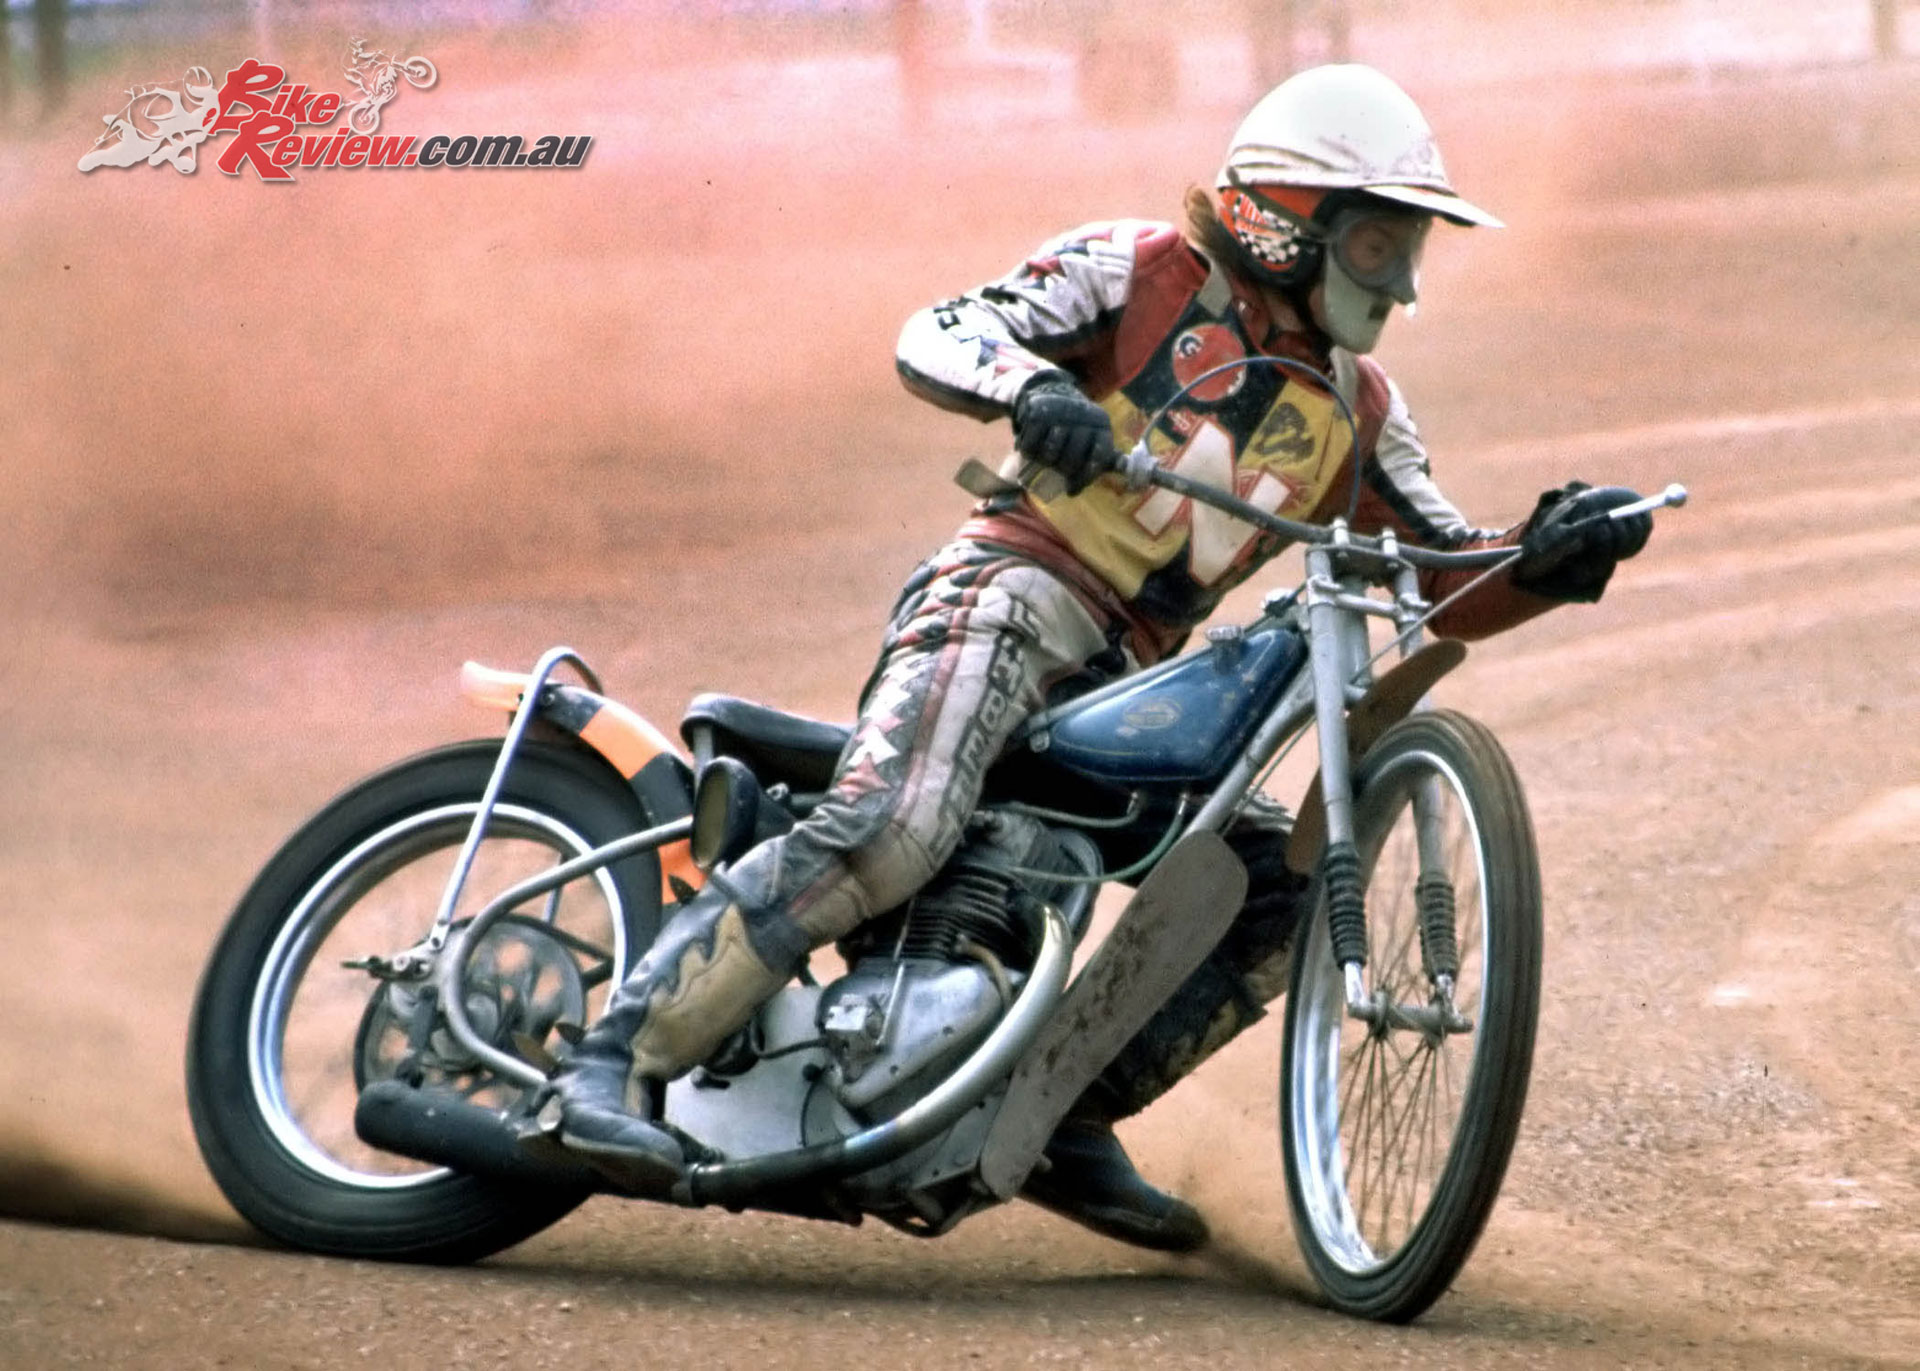 Speedway legend Neil Street will also be celebrated, with Phil and Jason Crump in attendance